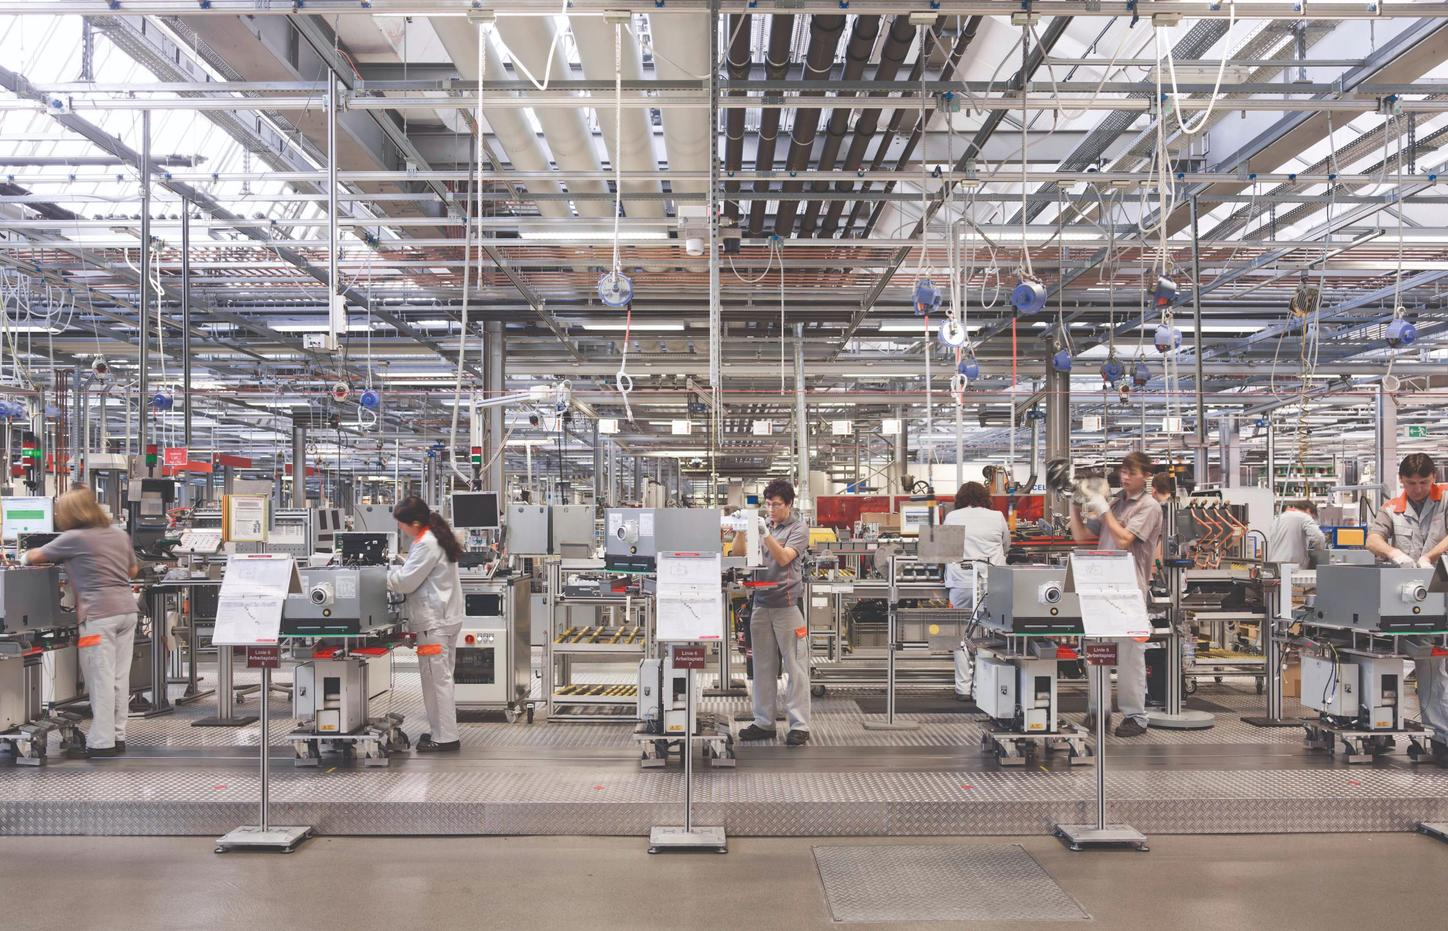 The image shows Viessmann employees at work in a factory.